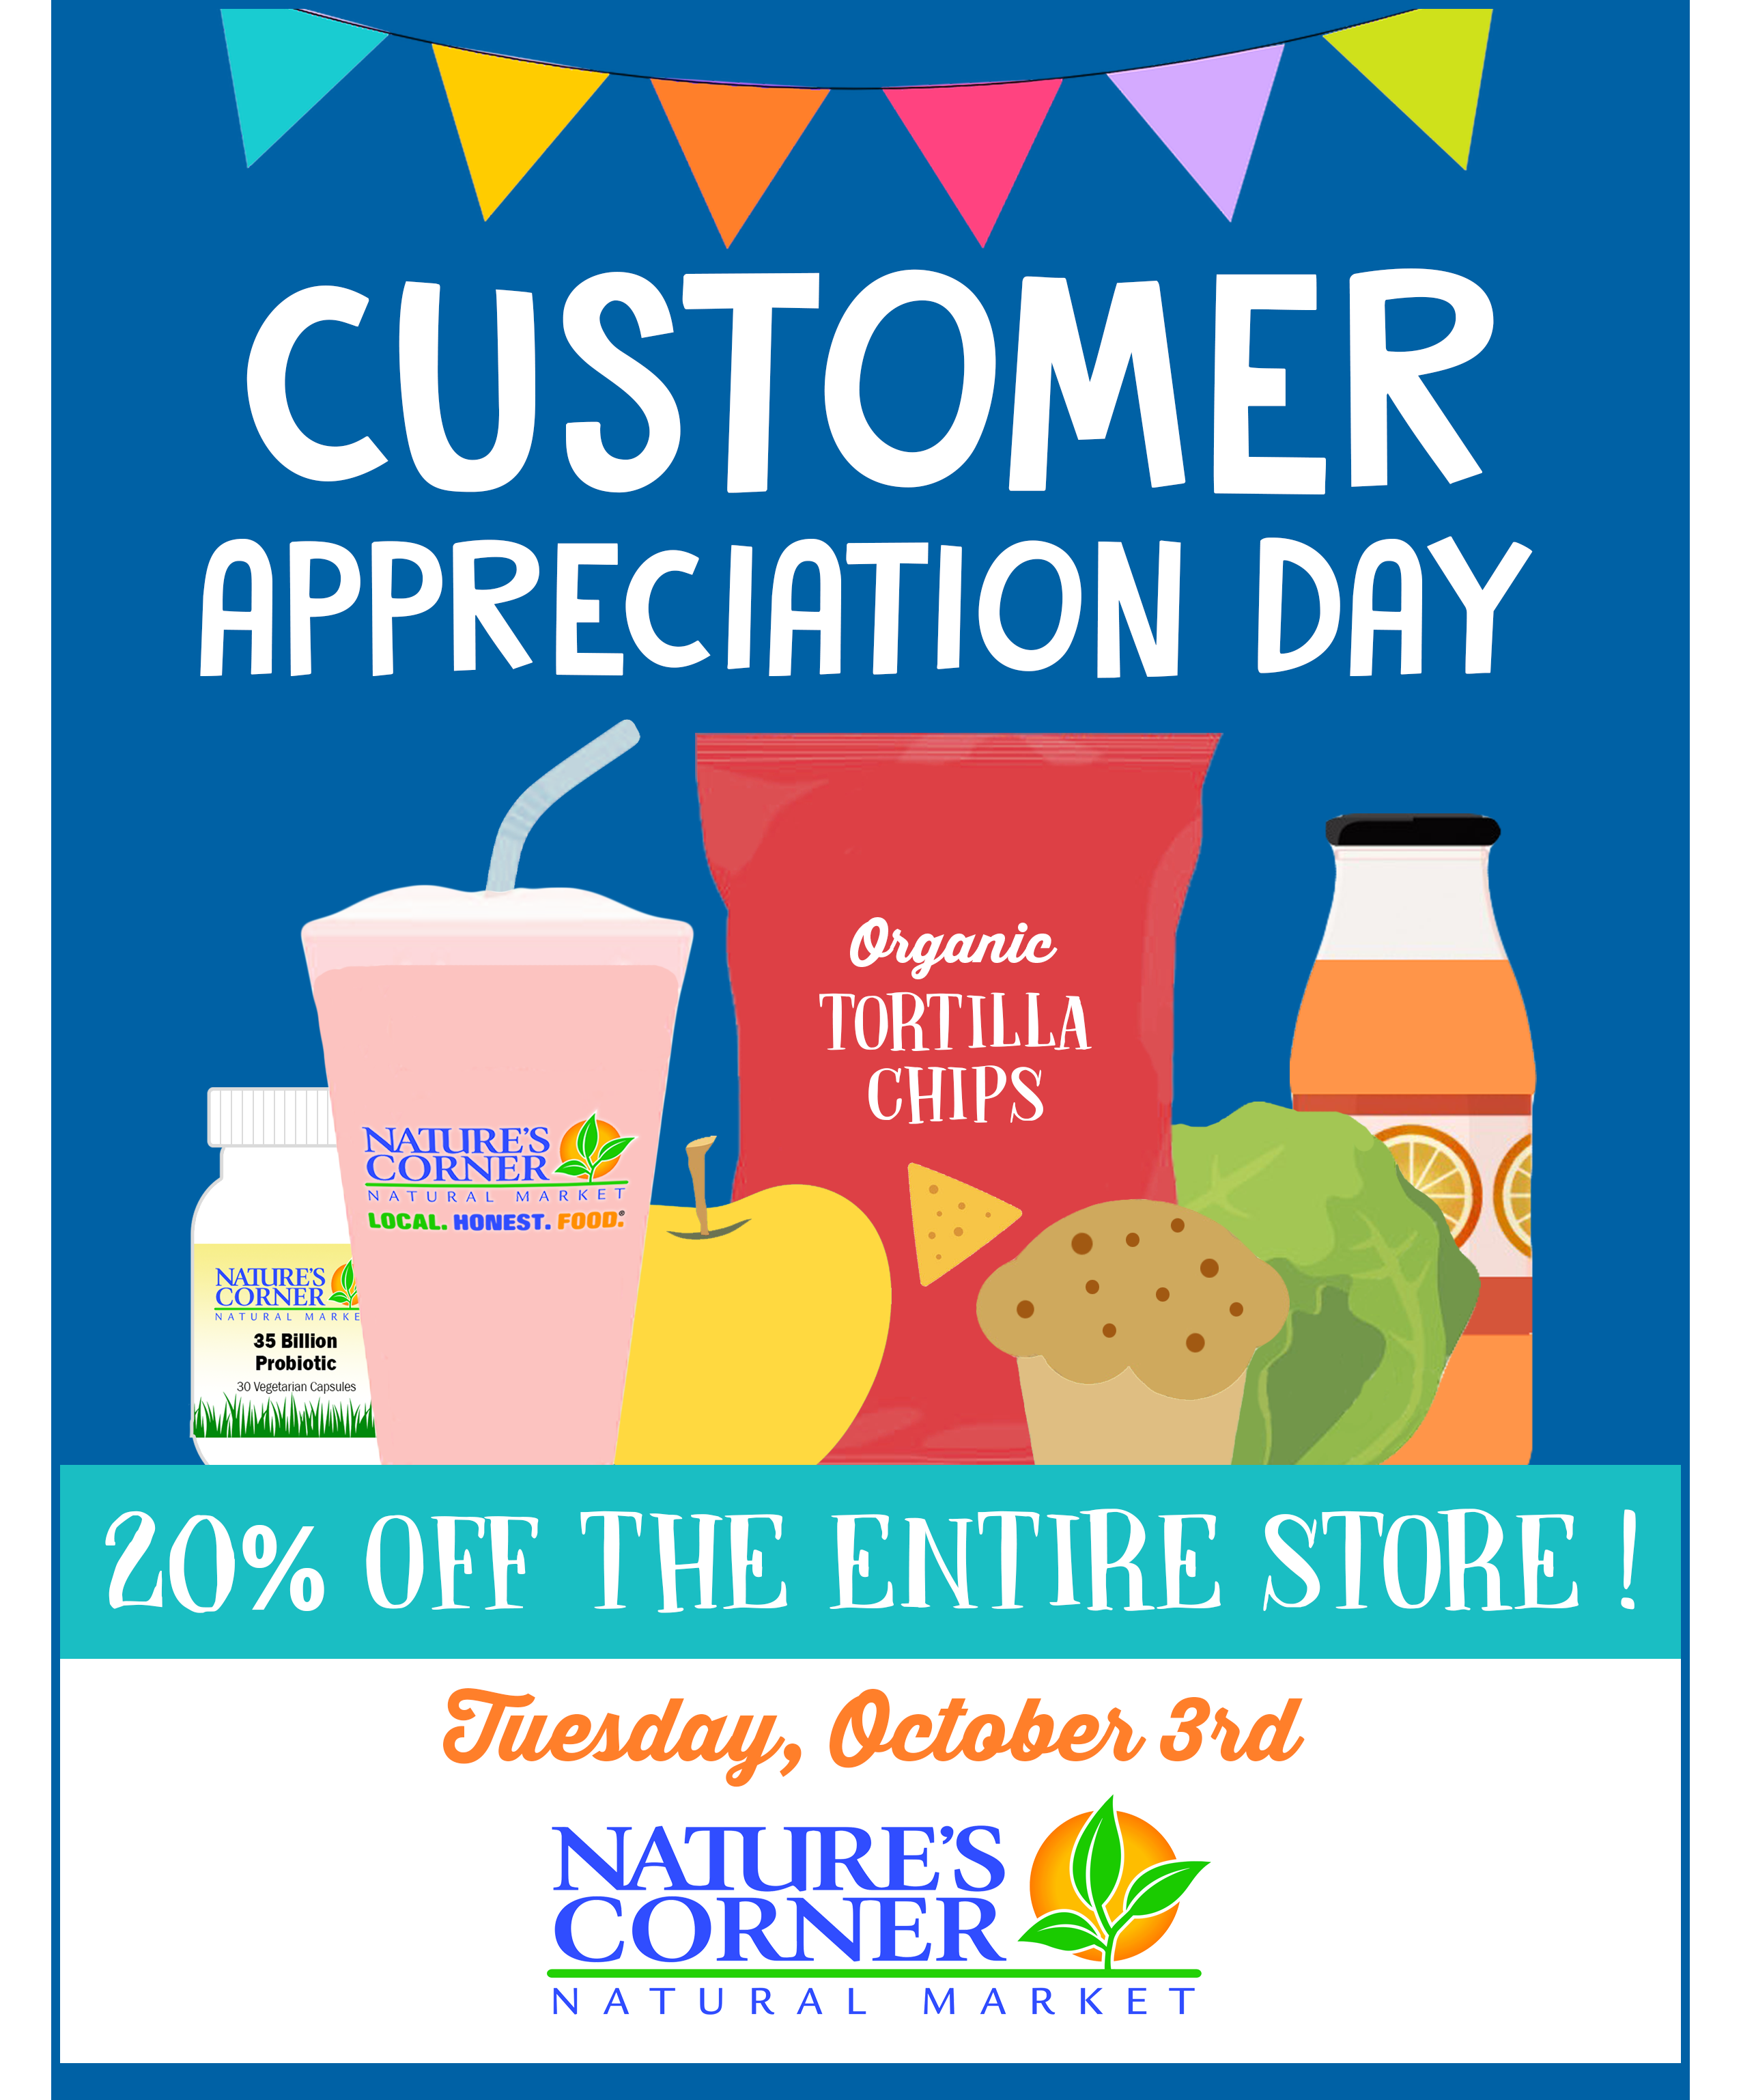 Customer Appreciation Day is Tuesday, - 929.7KB